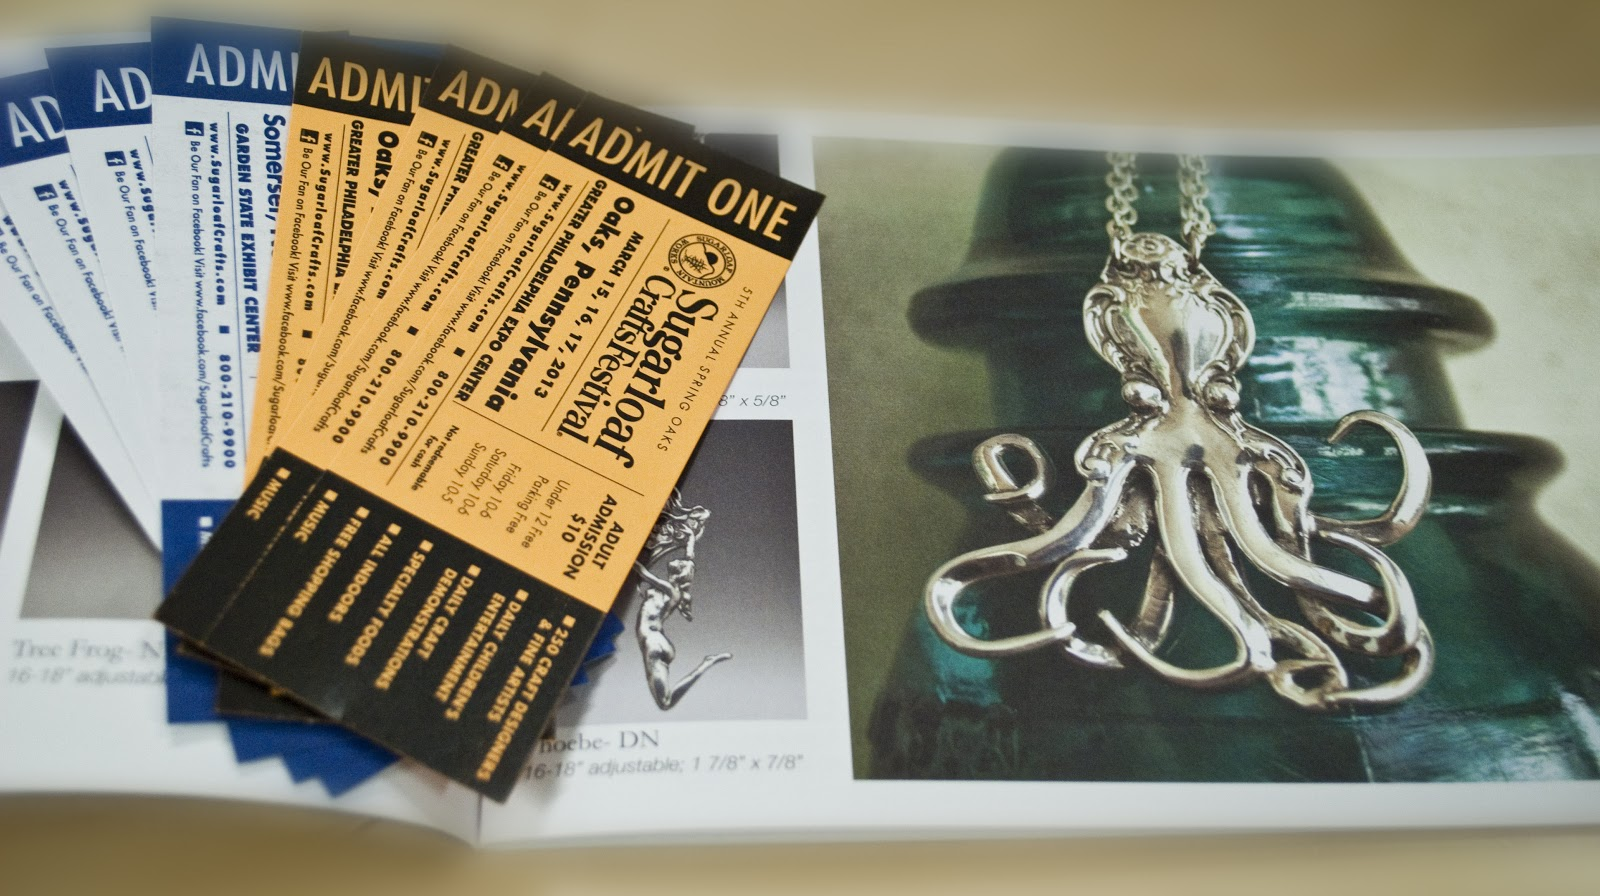 Silver spoon jewelry free show tickets for Sugarloaf craft festival nj